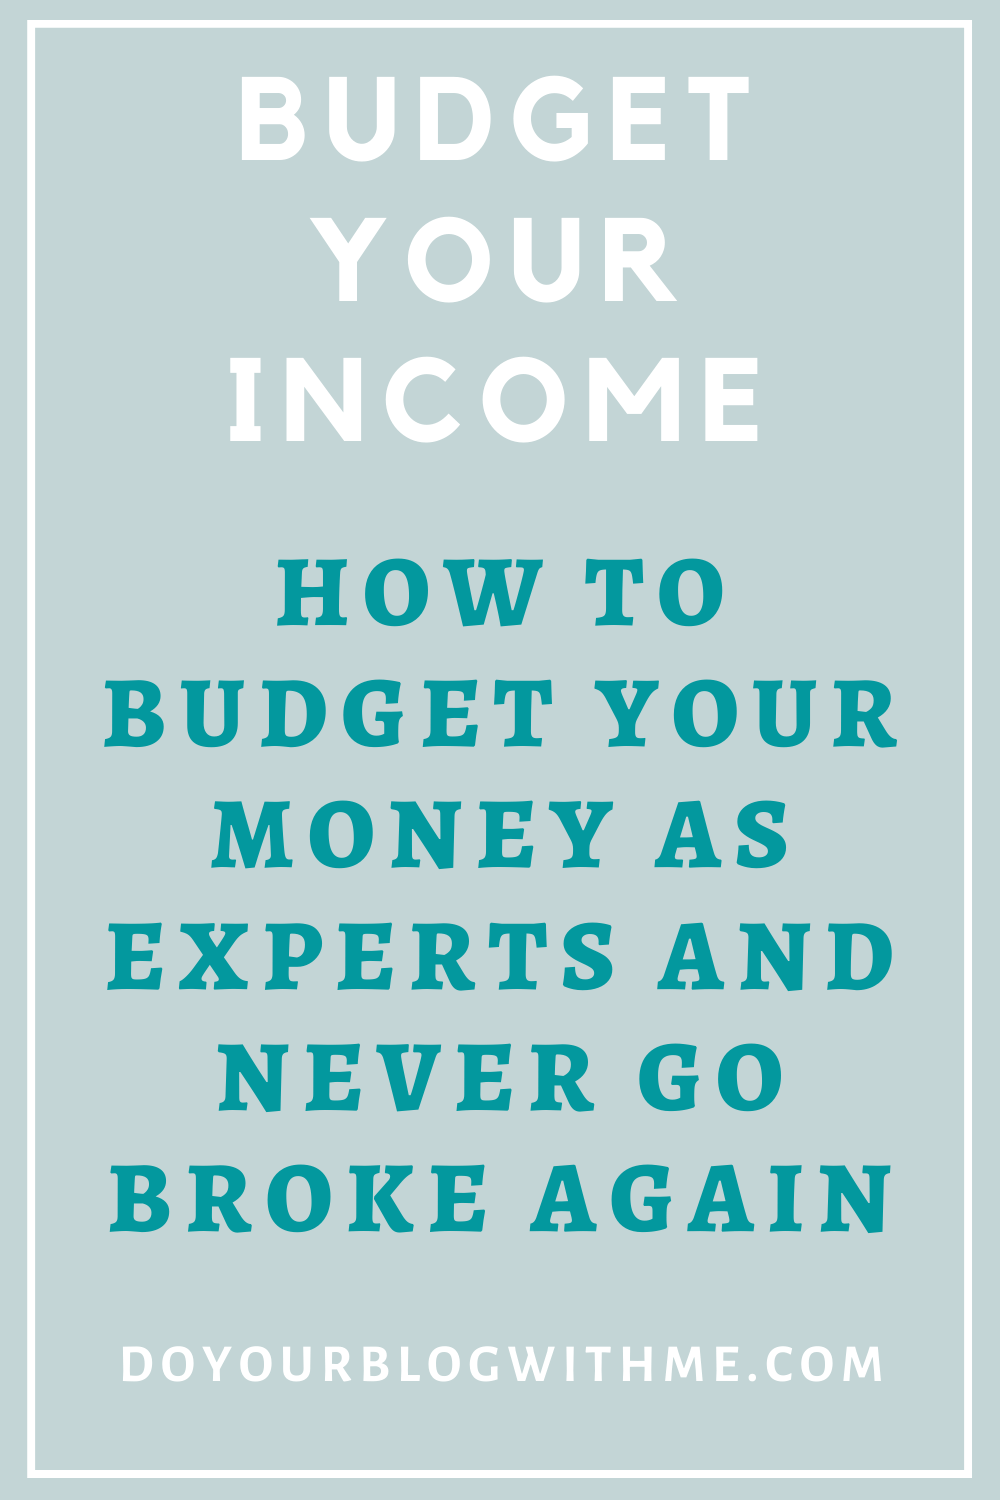 how to budget your family income as experts and never go broke